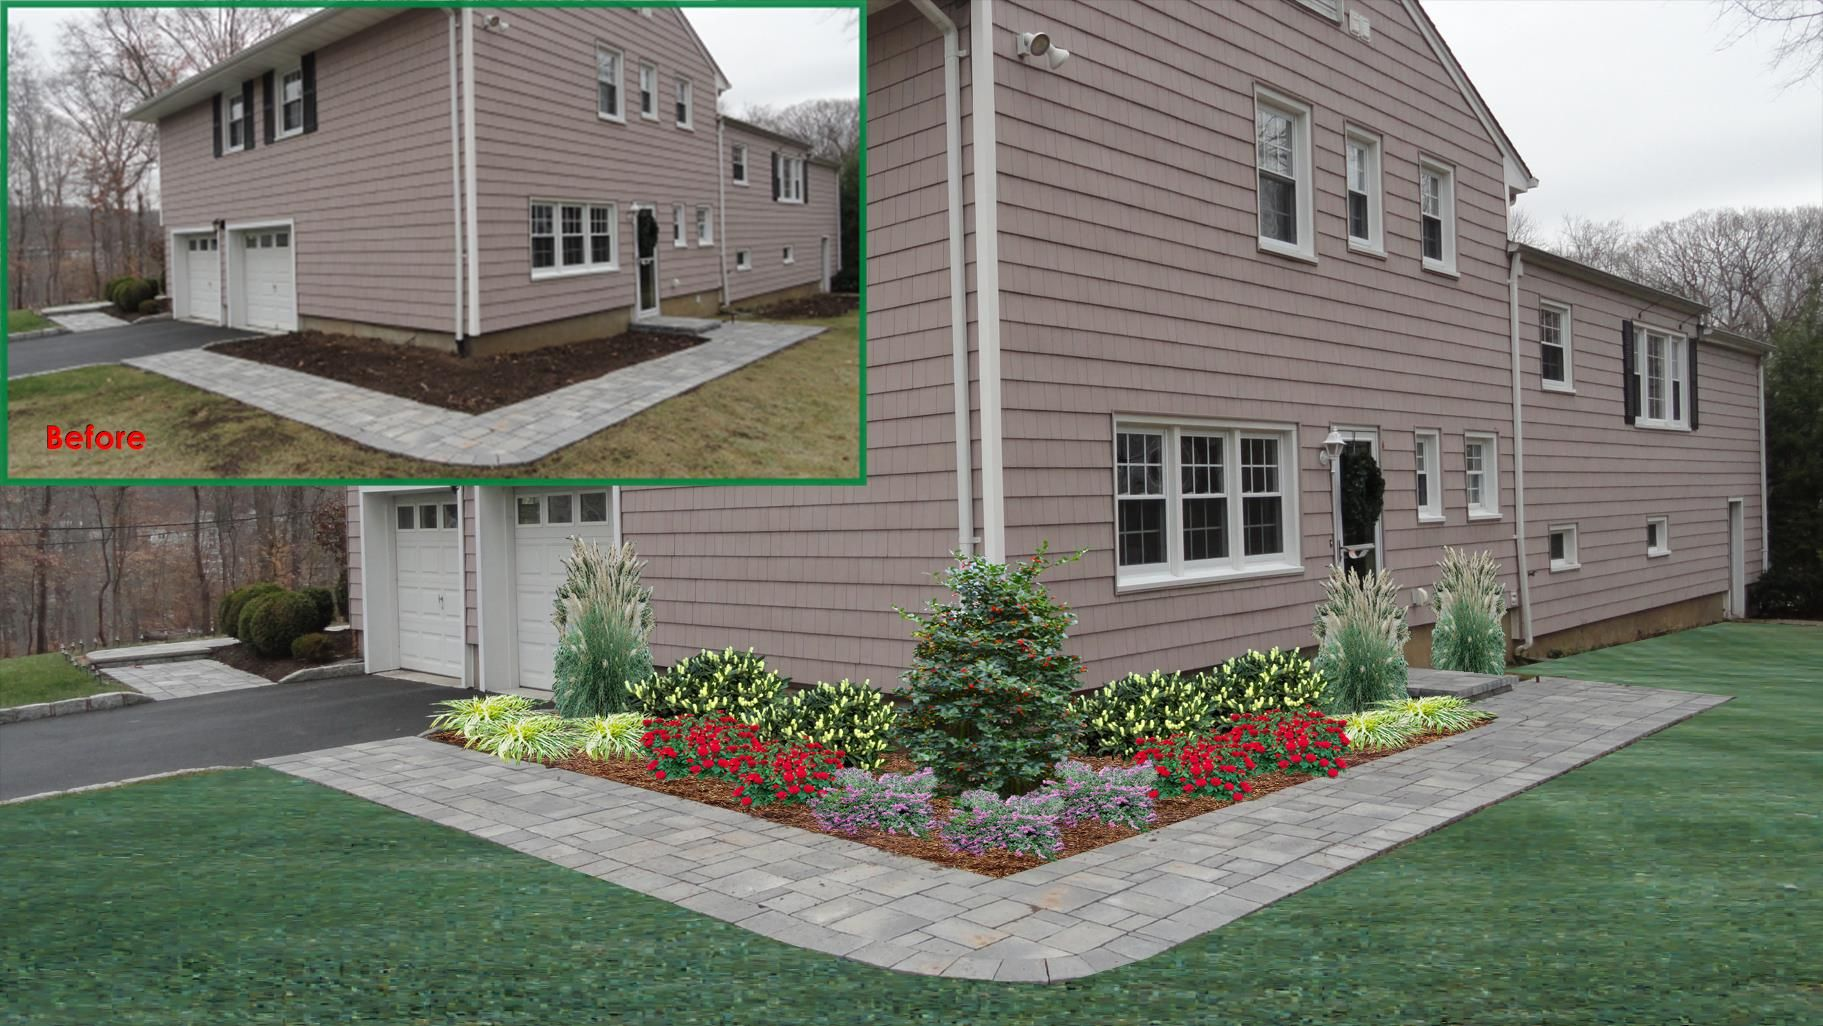 The corner of this house needed a nice landscape design. This is one on home and garden edging, home and pools, home and management, home and garden ponds, home and lighting, home and security, home and travel, home and site plan, home and maintenance, home and electronics, home and fashion, home and flowers,